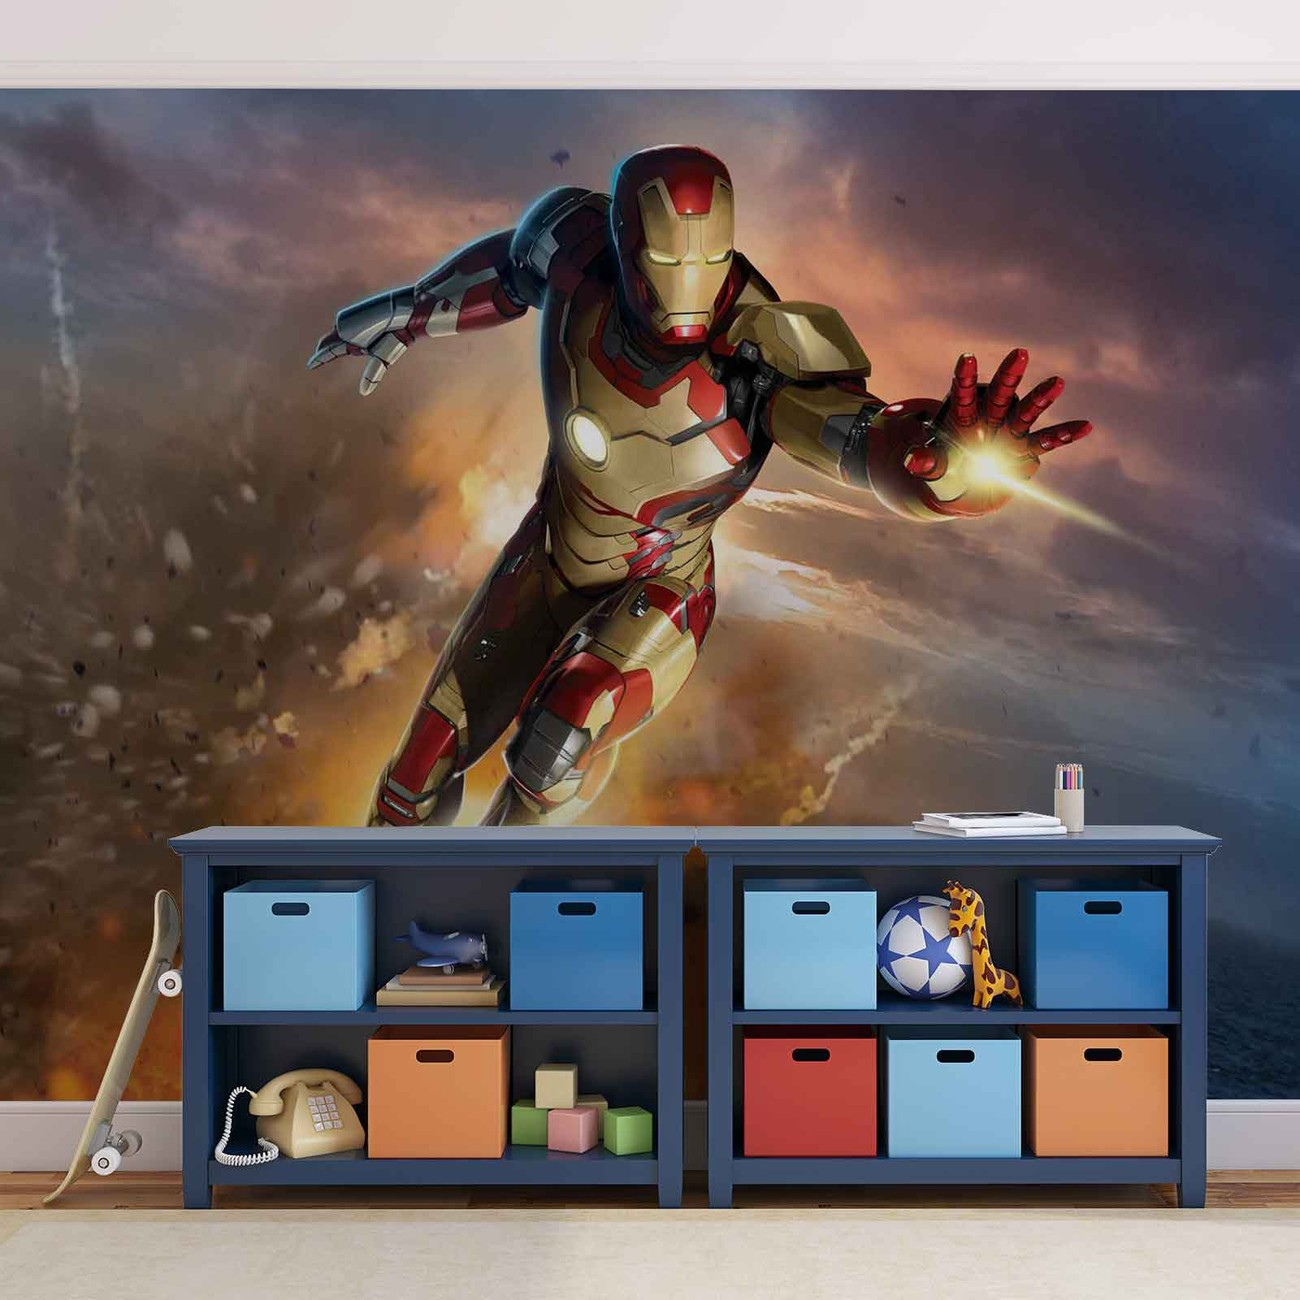 Iron man marvel avengers wall paper mural buy at europosters for Avengers mural poster